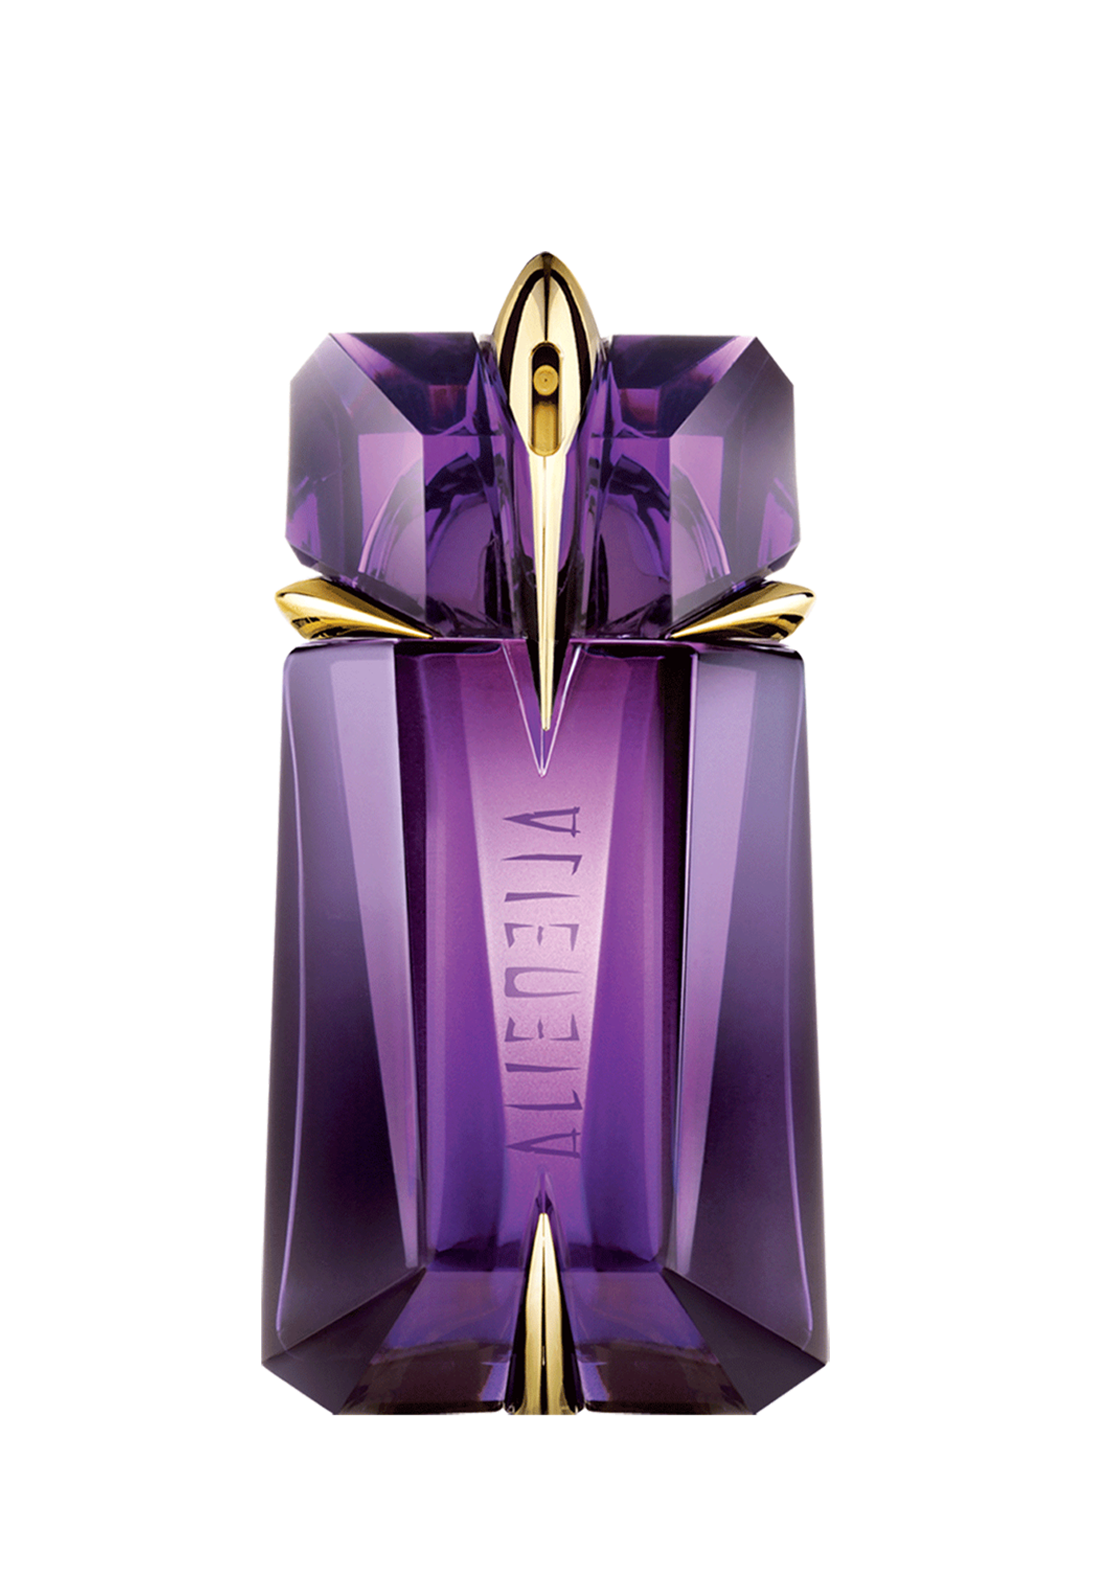 Thierry Mugler Alien Eau De Toilette 60ml, Refillable